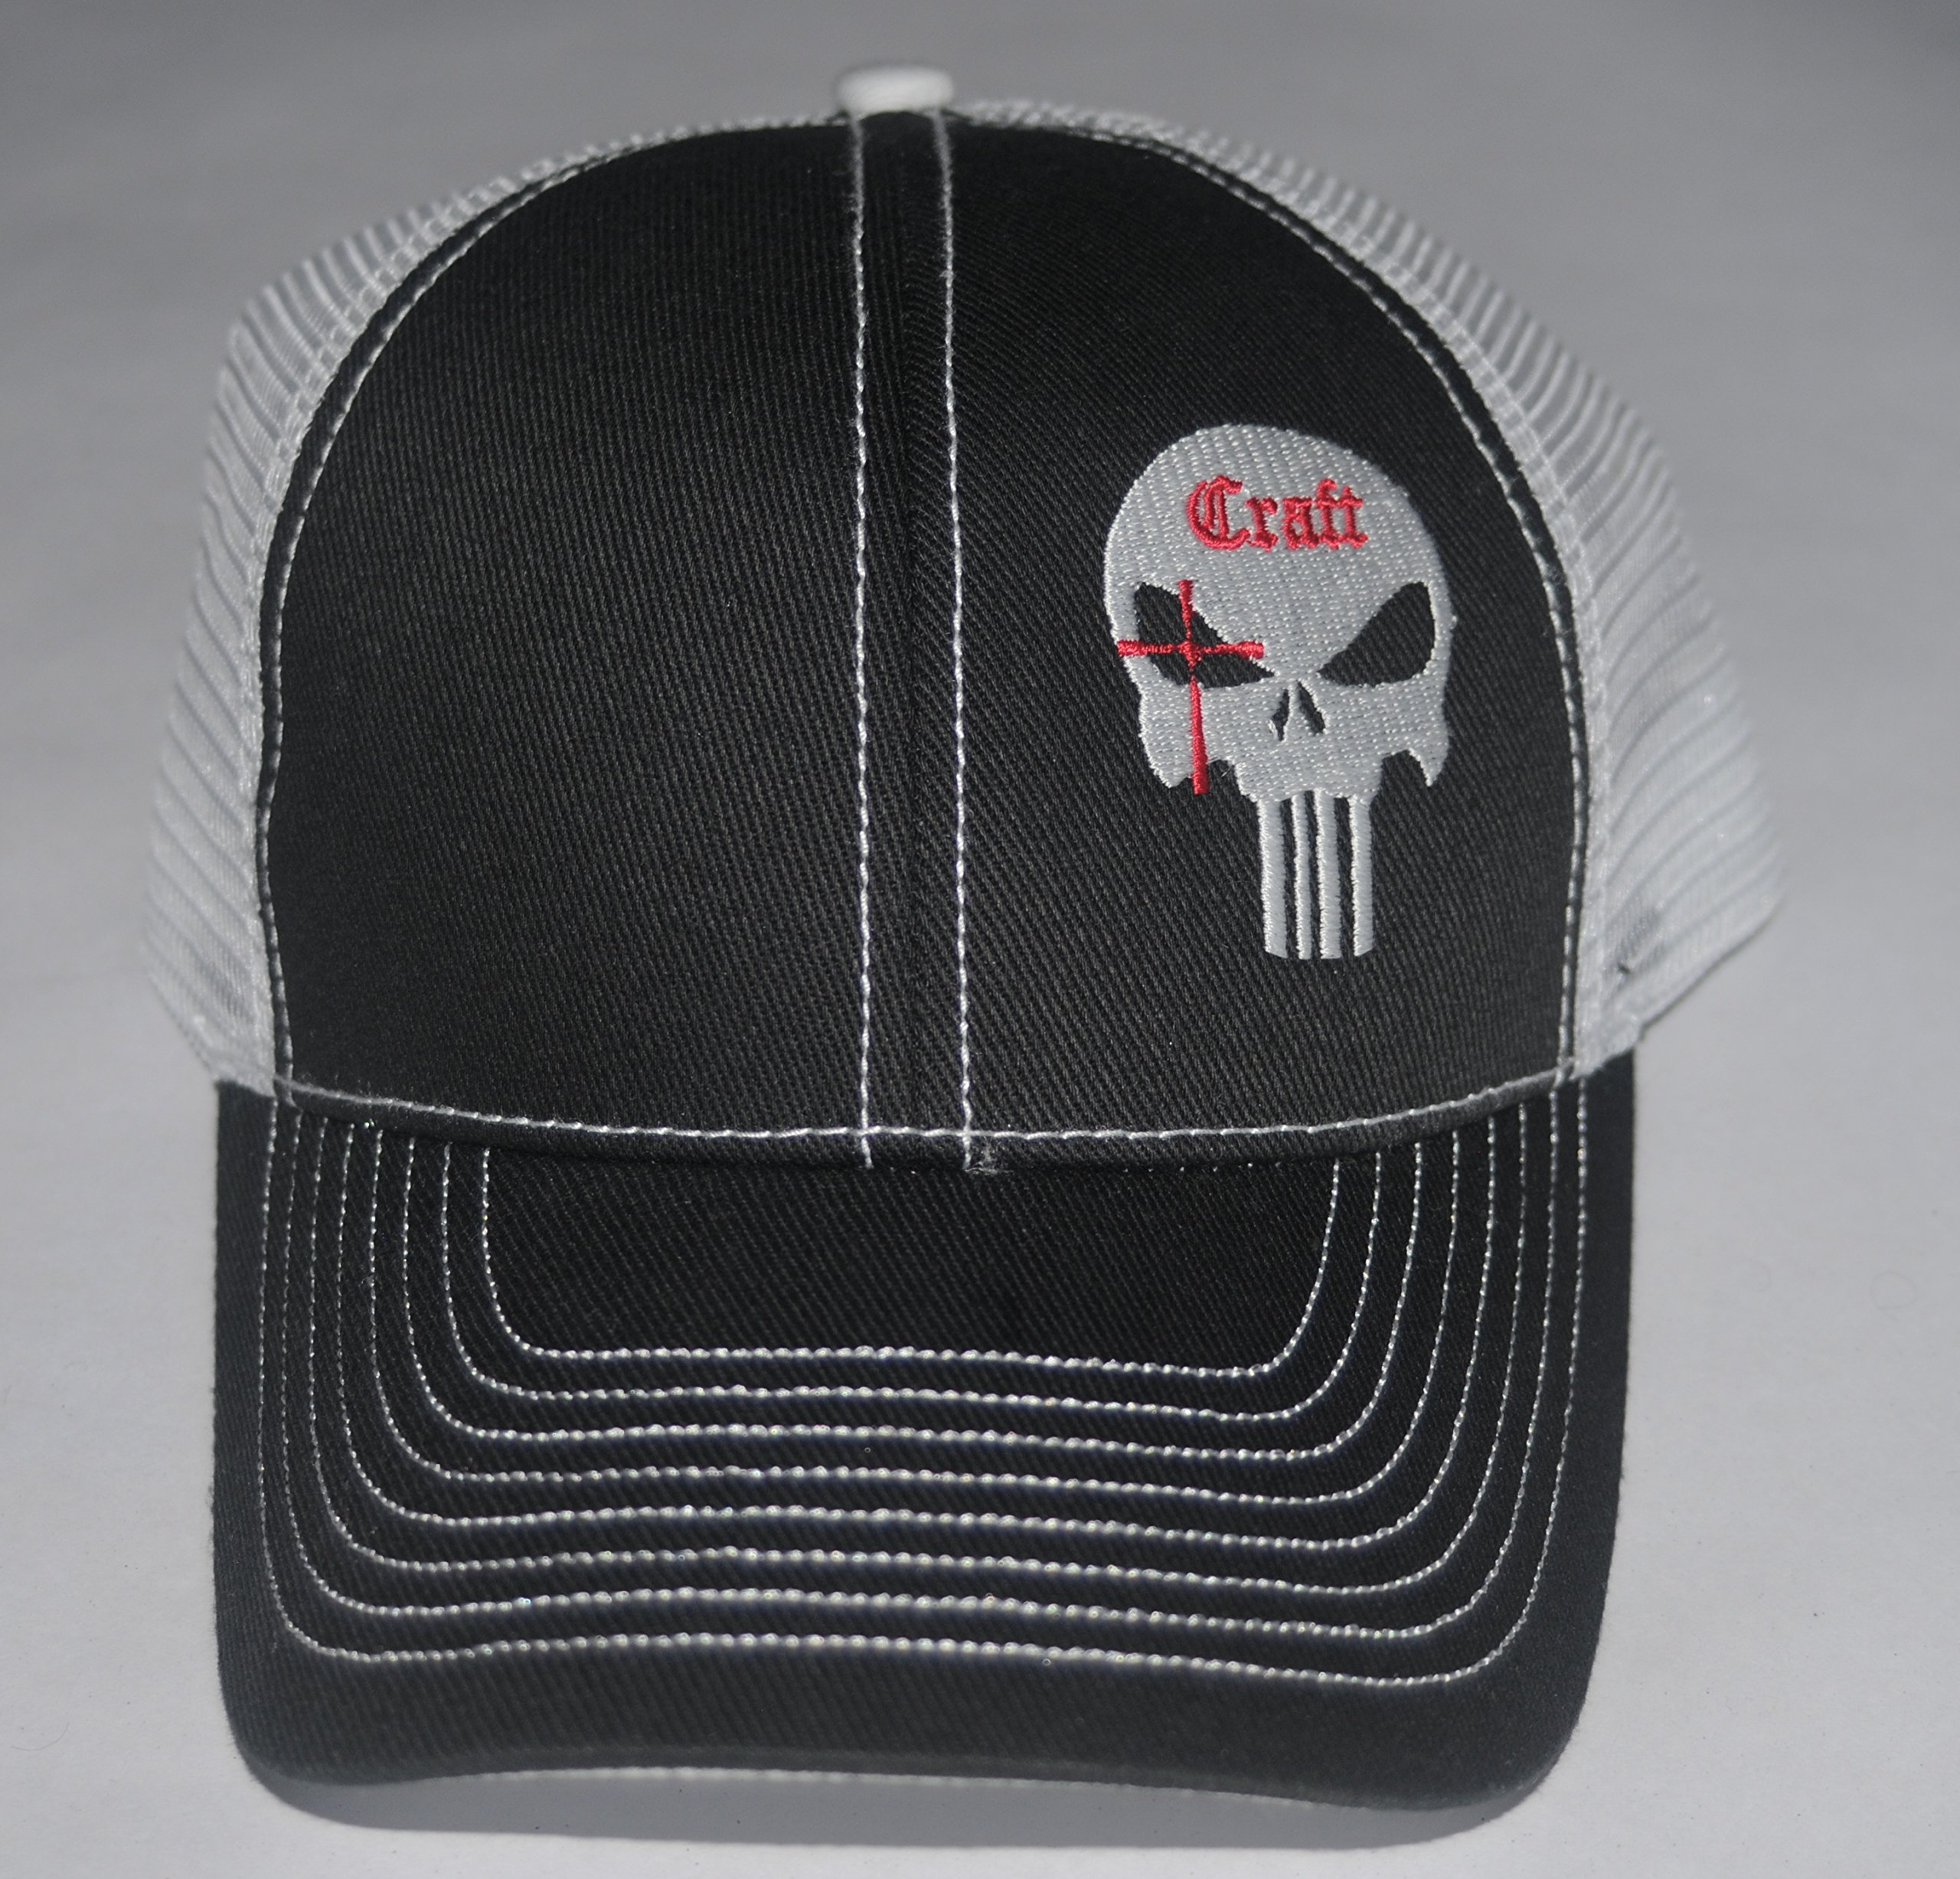 6e086ca25db Galleon - Black Chris Kyle Hat Official Craft International Mesh Shooters  Cap Adjustable American Sniper